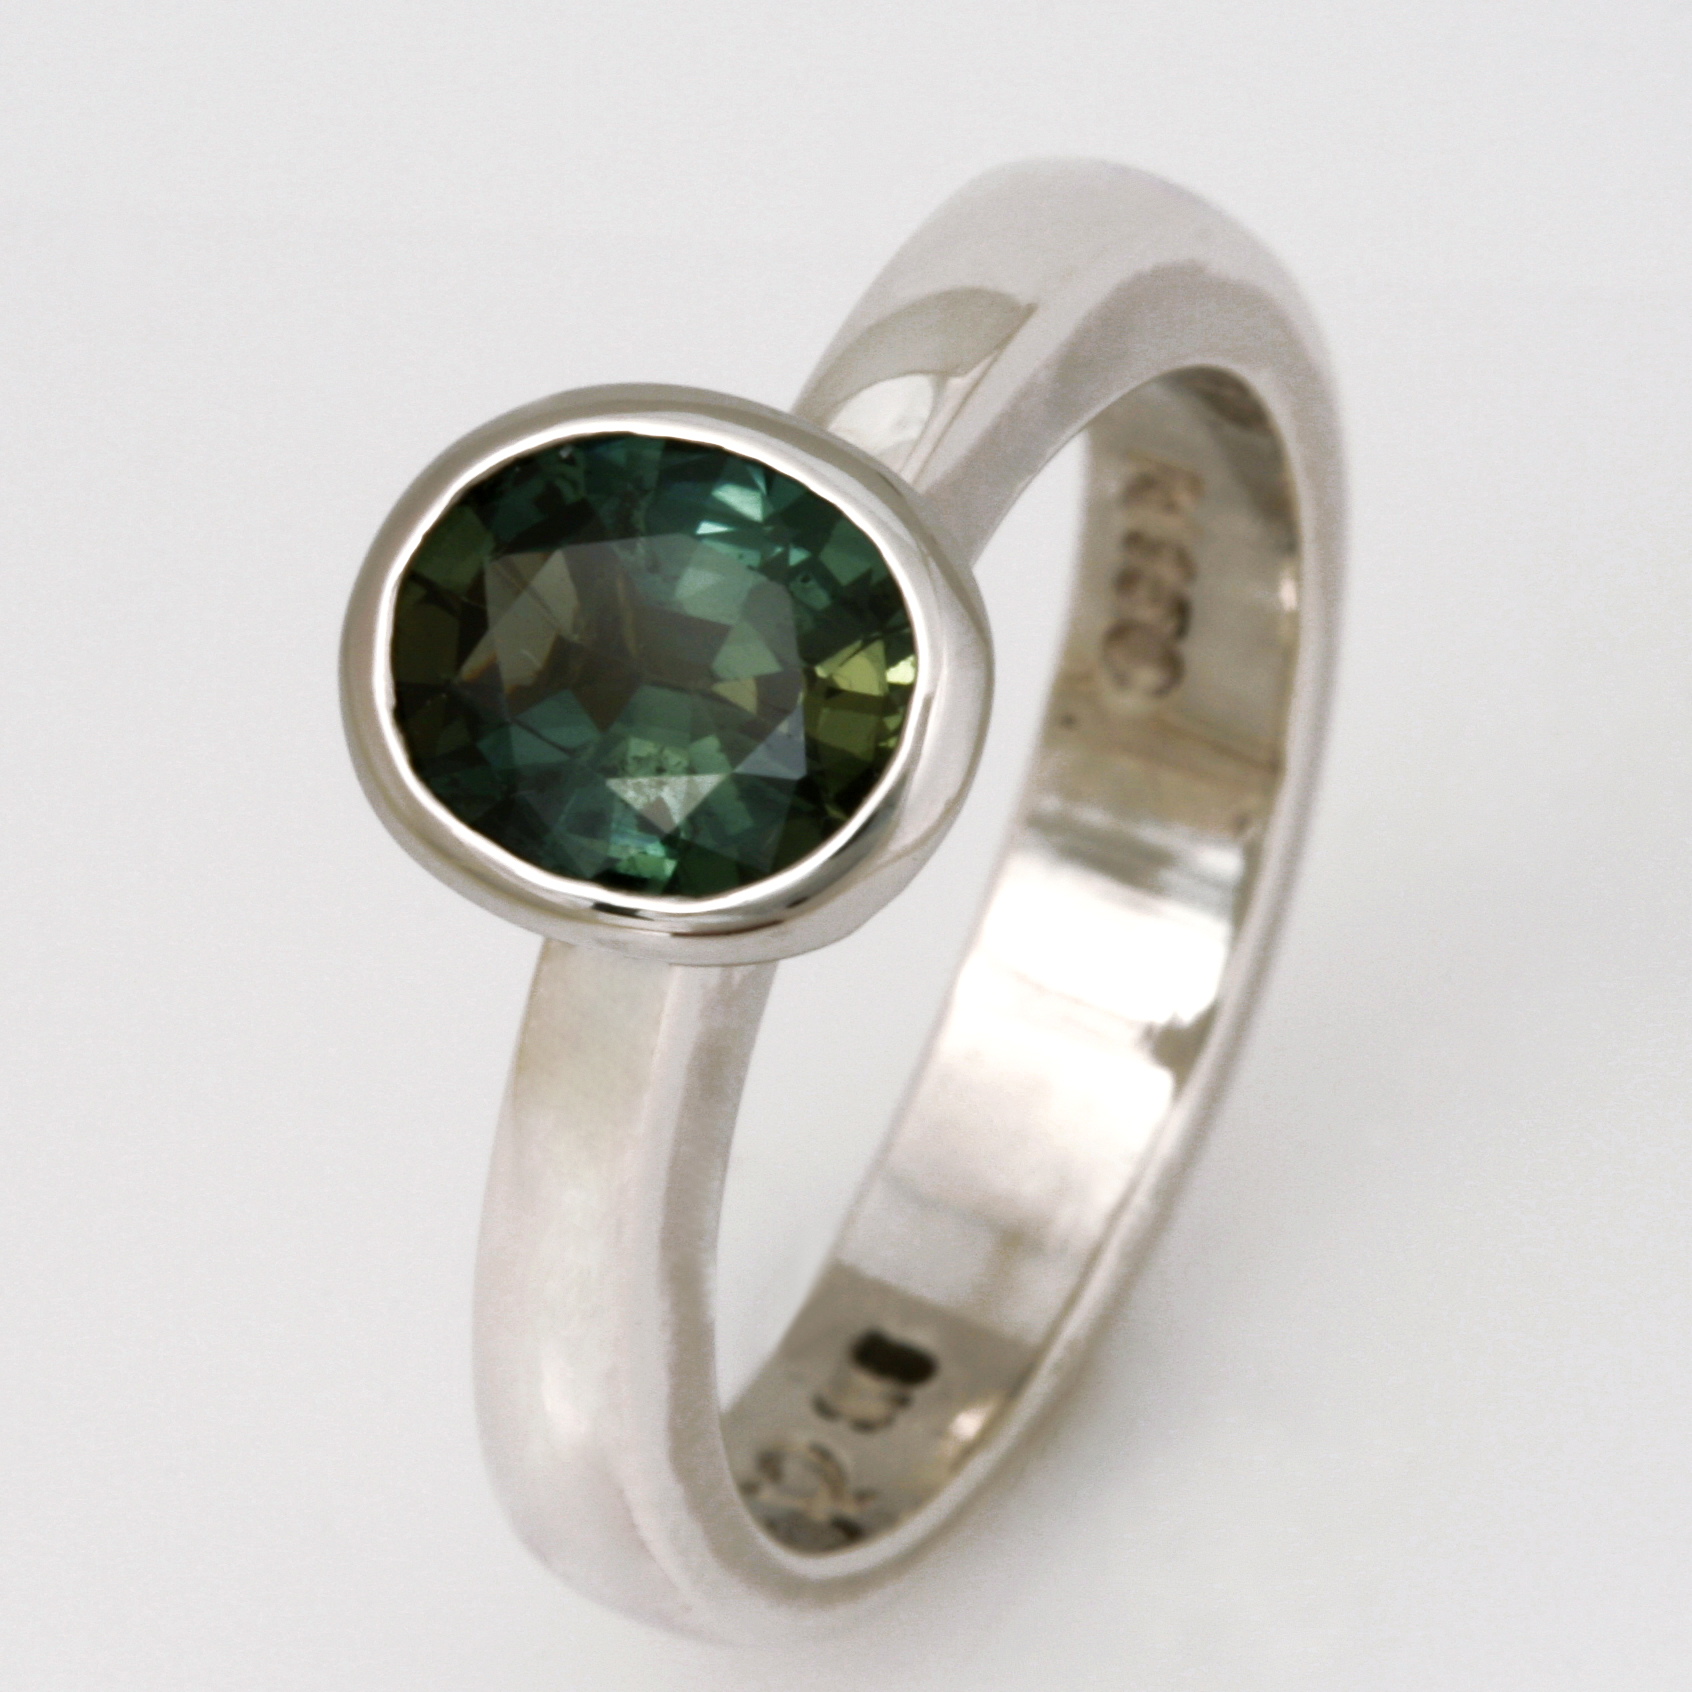 Handmade ladies sterling silver with palladium and 9ct white gold ring featuring a green sapphire